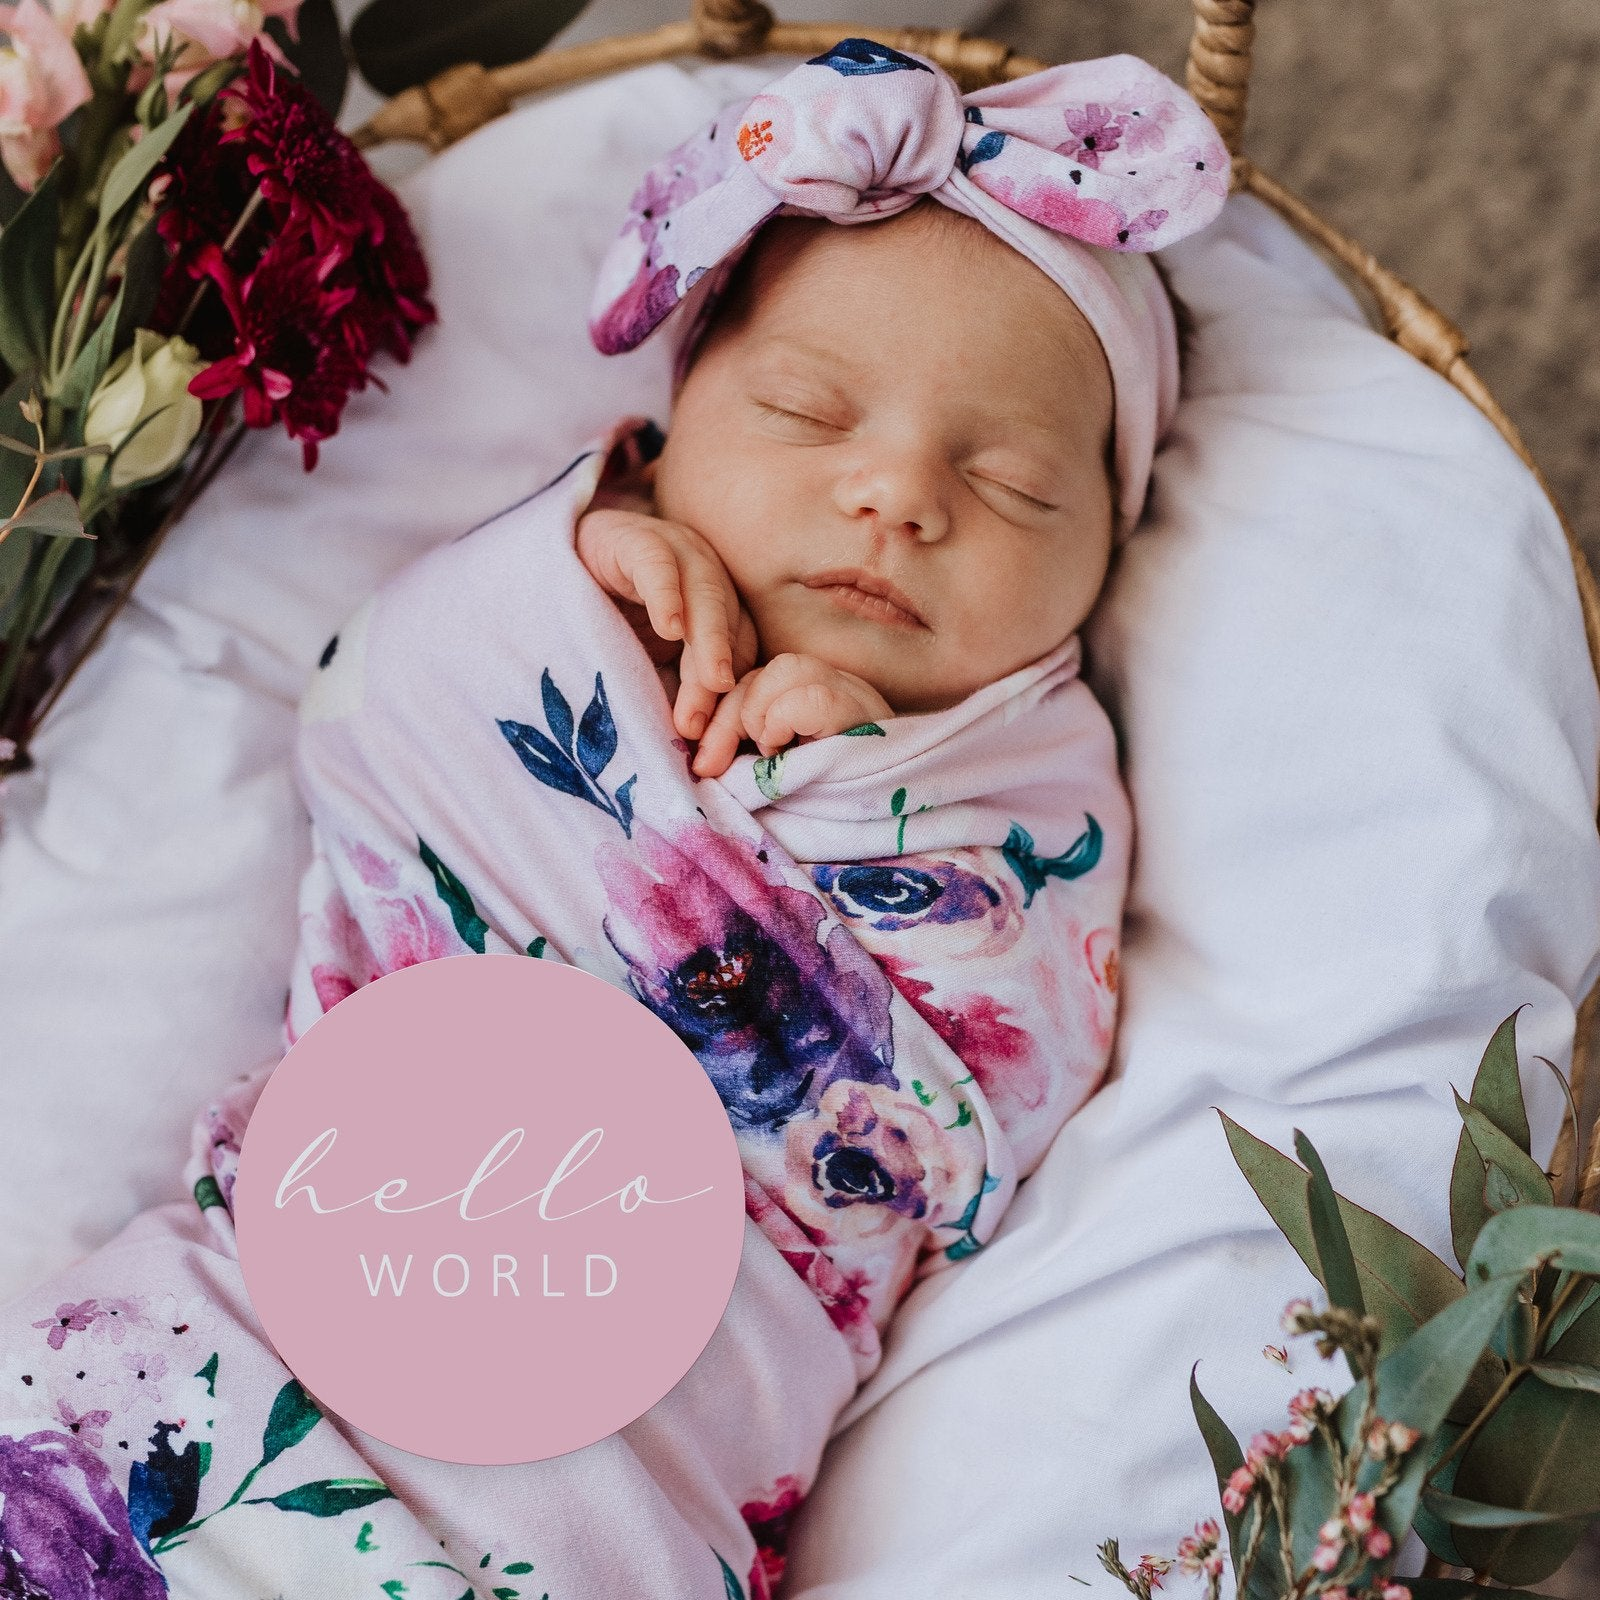 Jersey Cotton Swaddle Blanket and Headband Baby Set Floral Kiss - MyLullaby